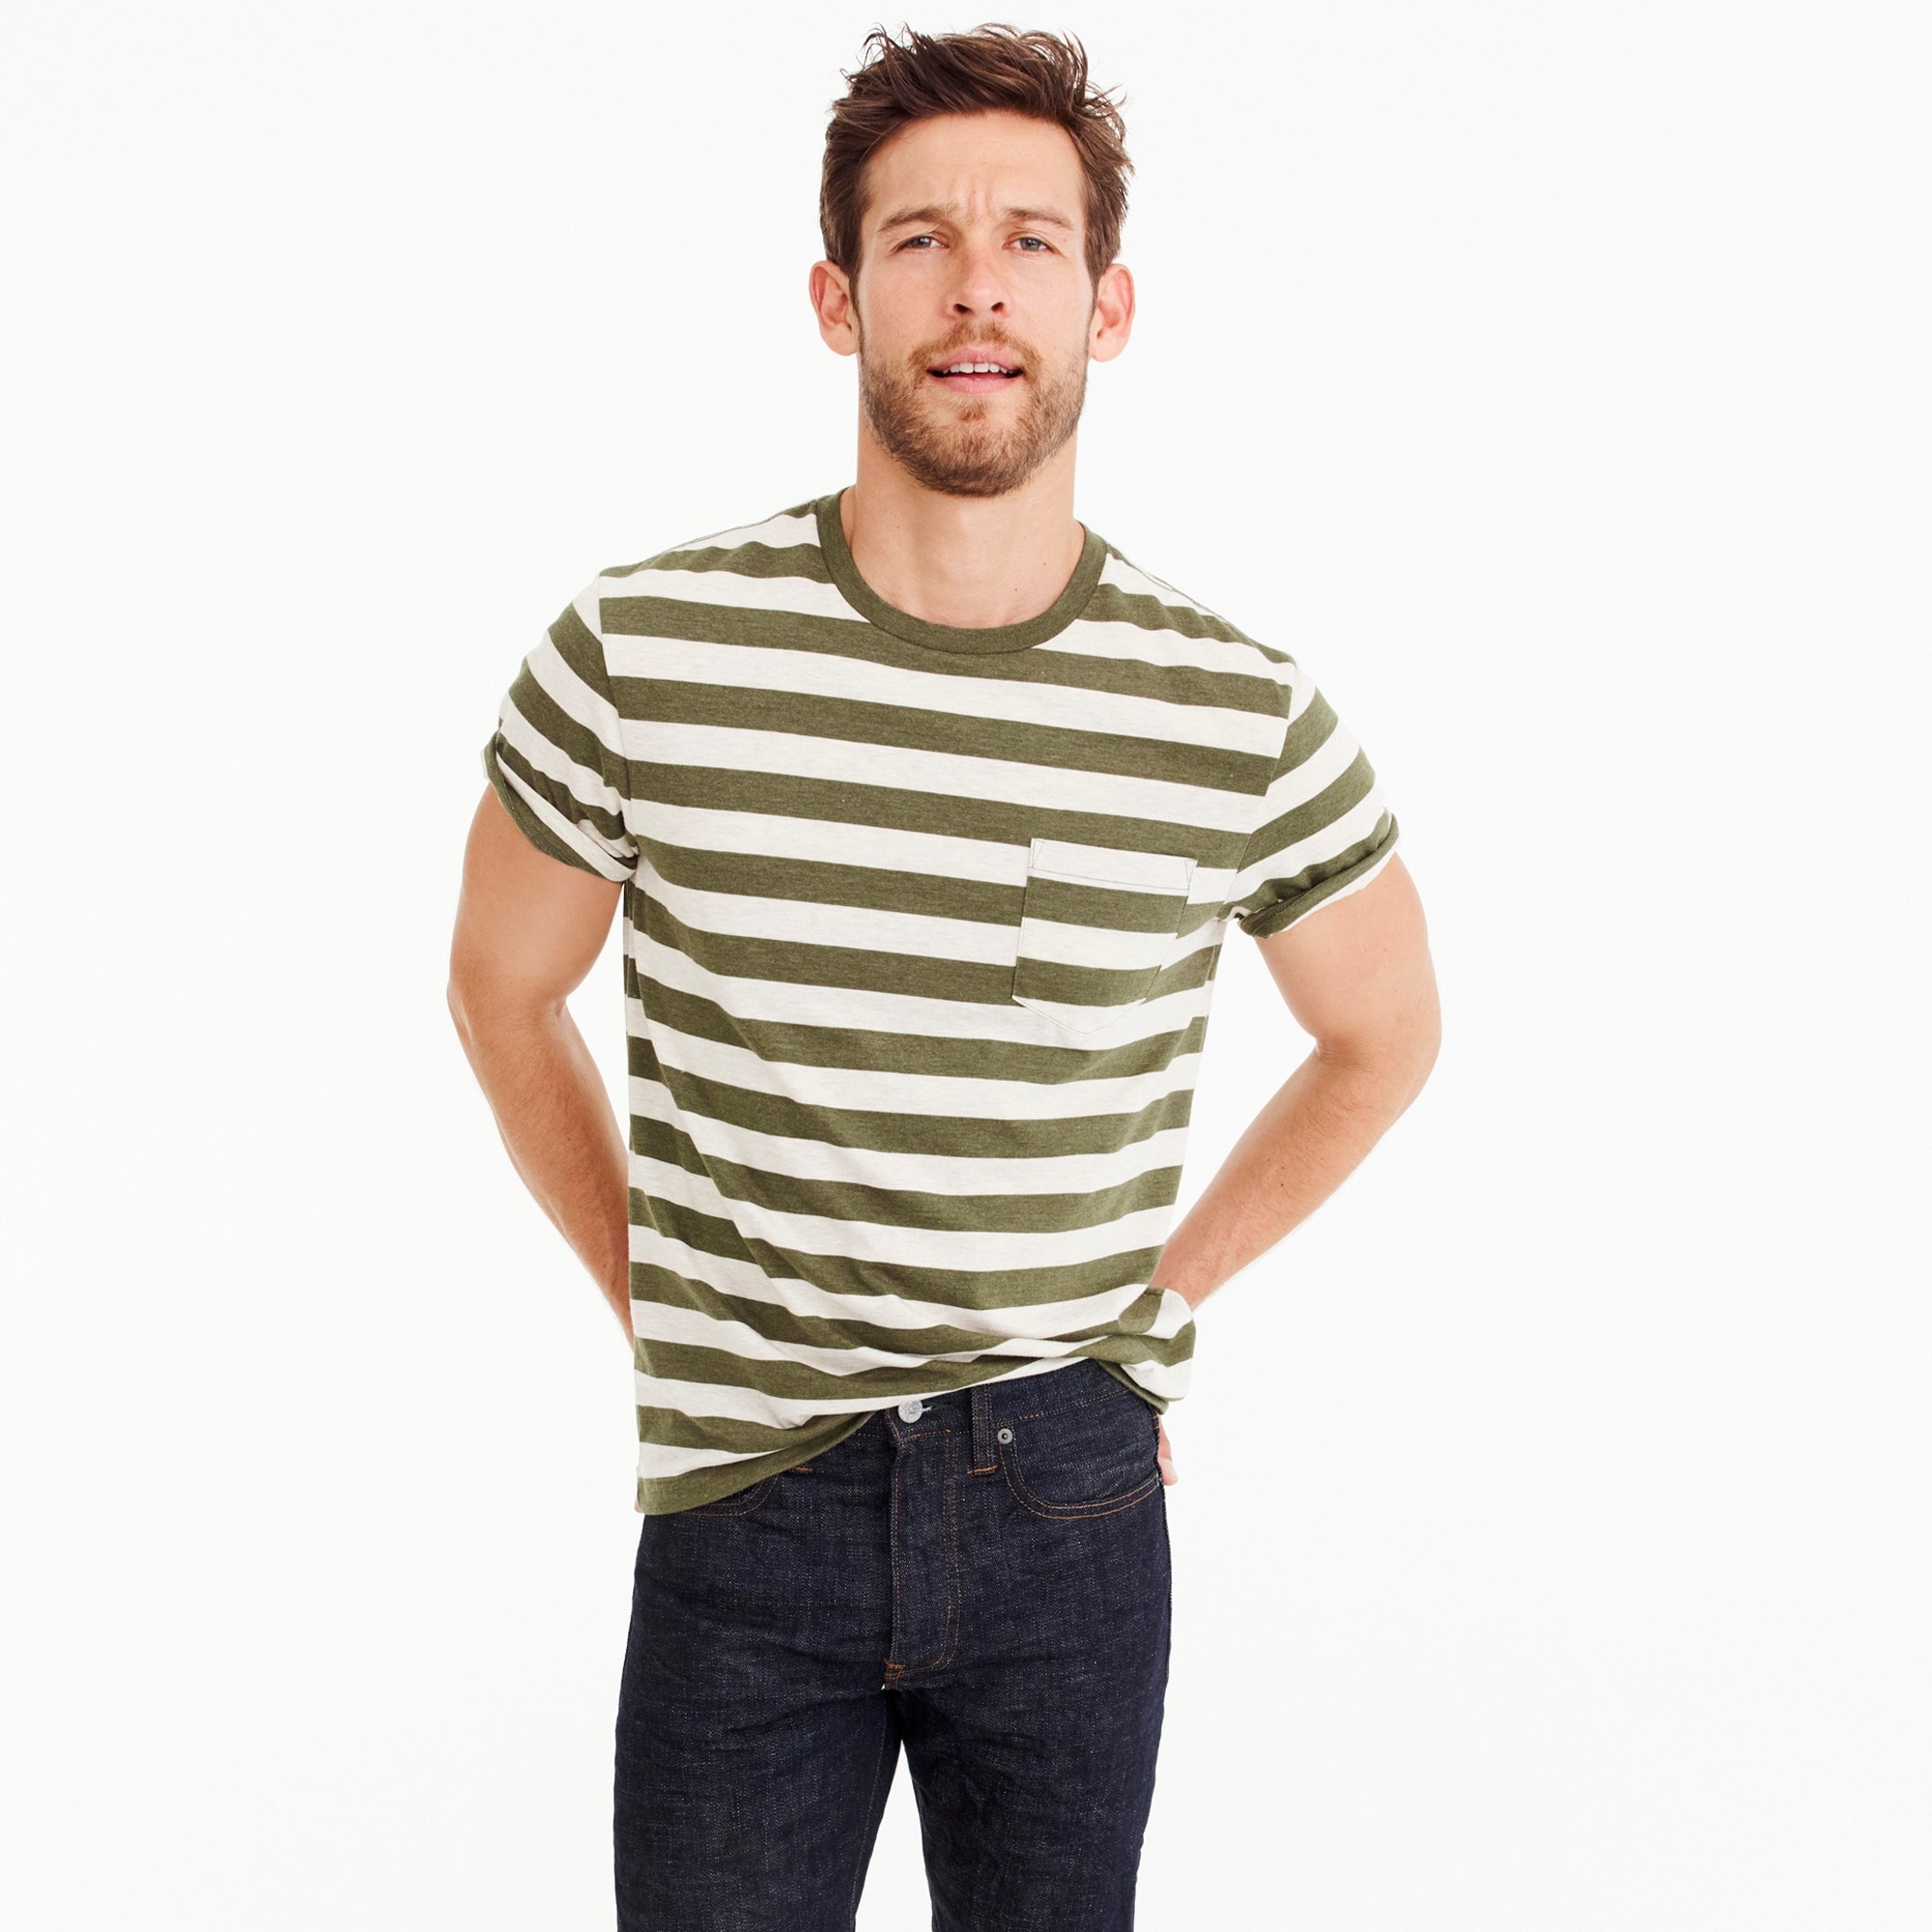 J.Crew Mercantile Broken-in T-shirt in Bedford stripe